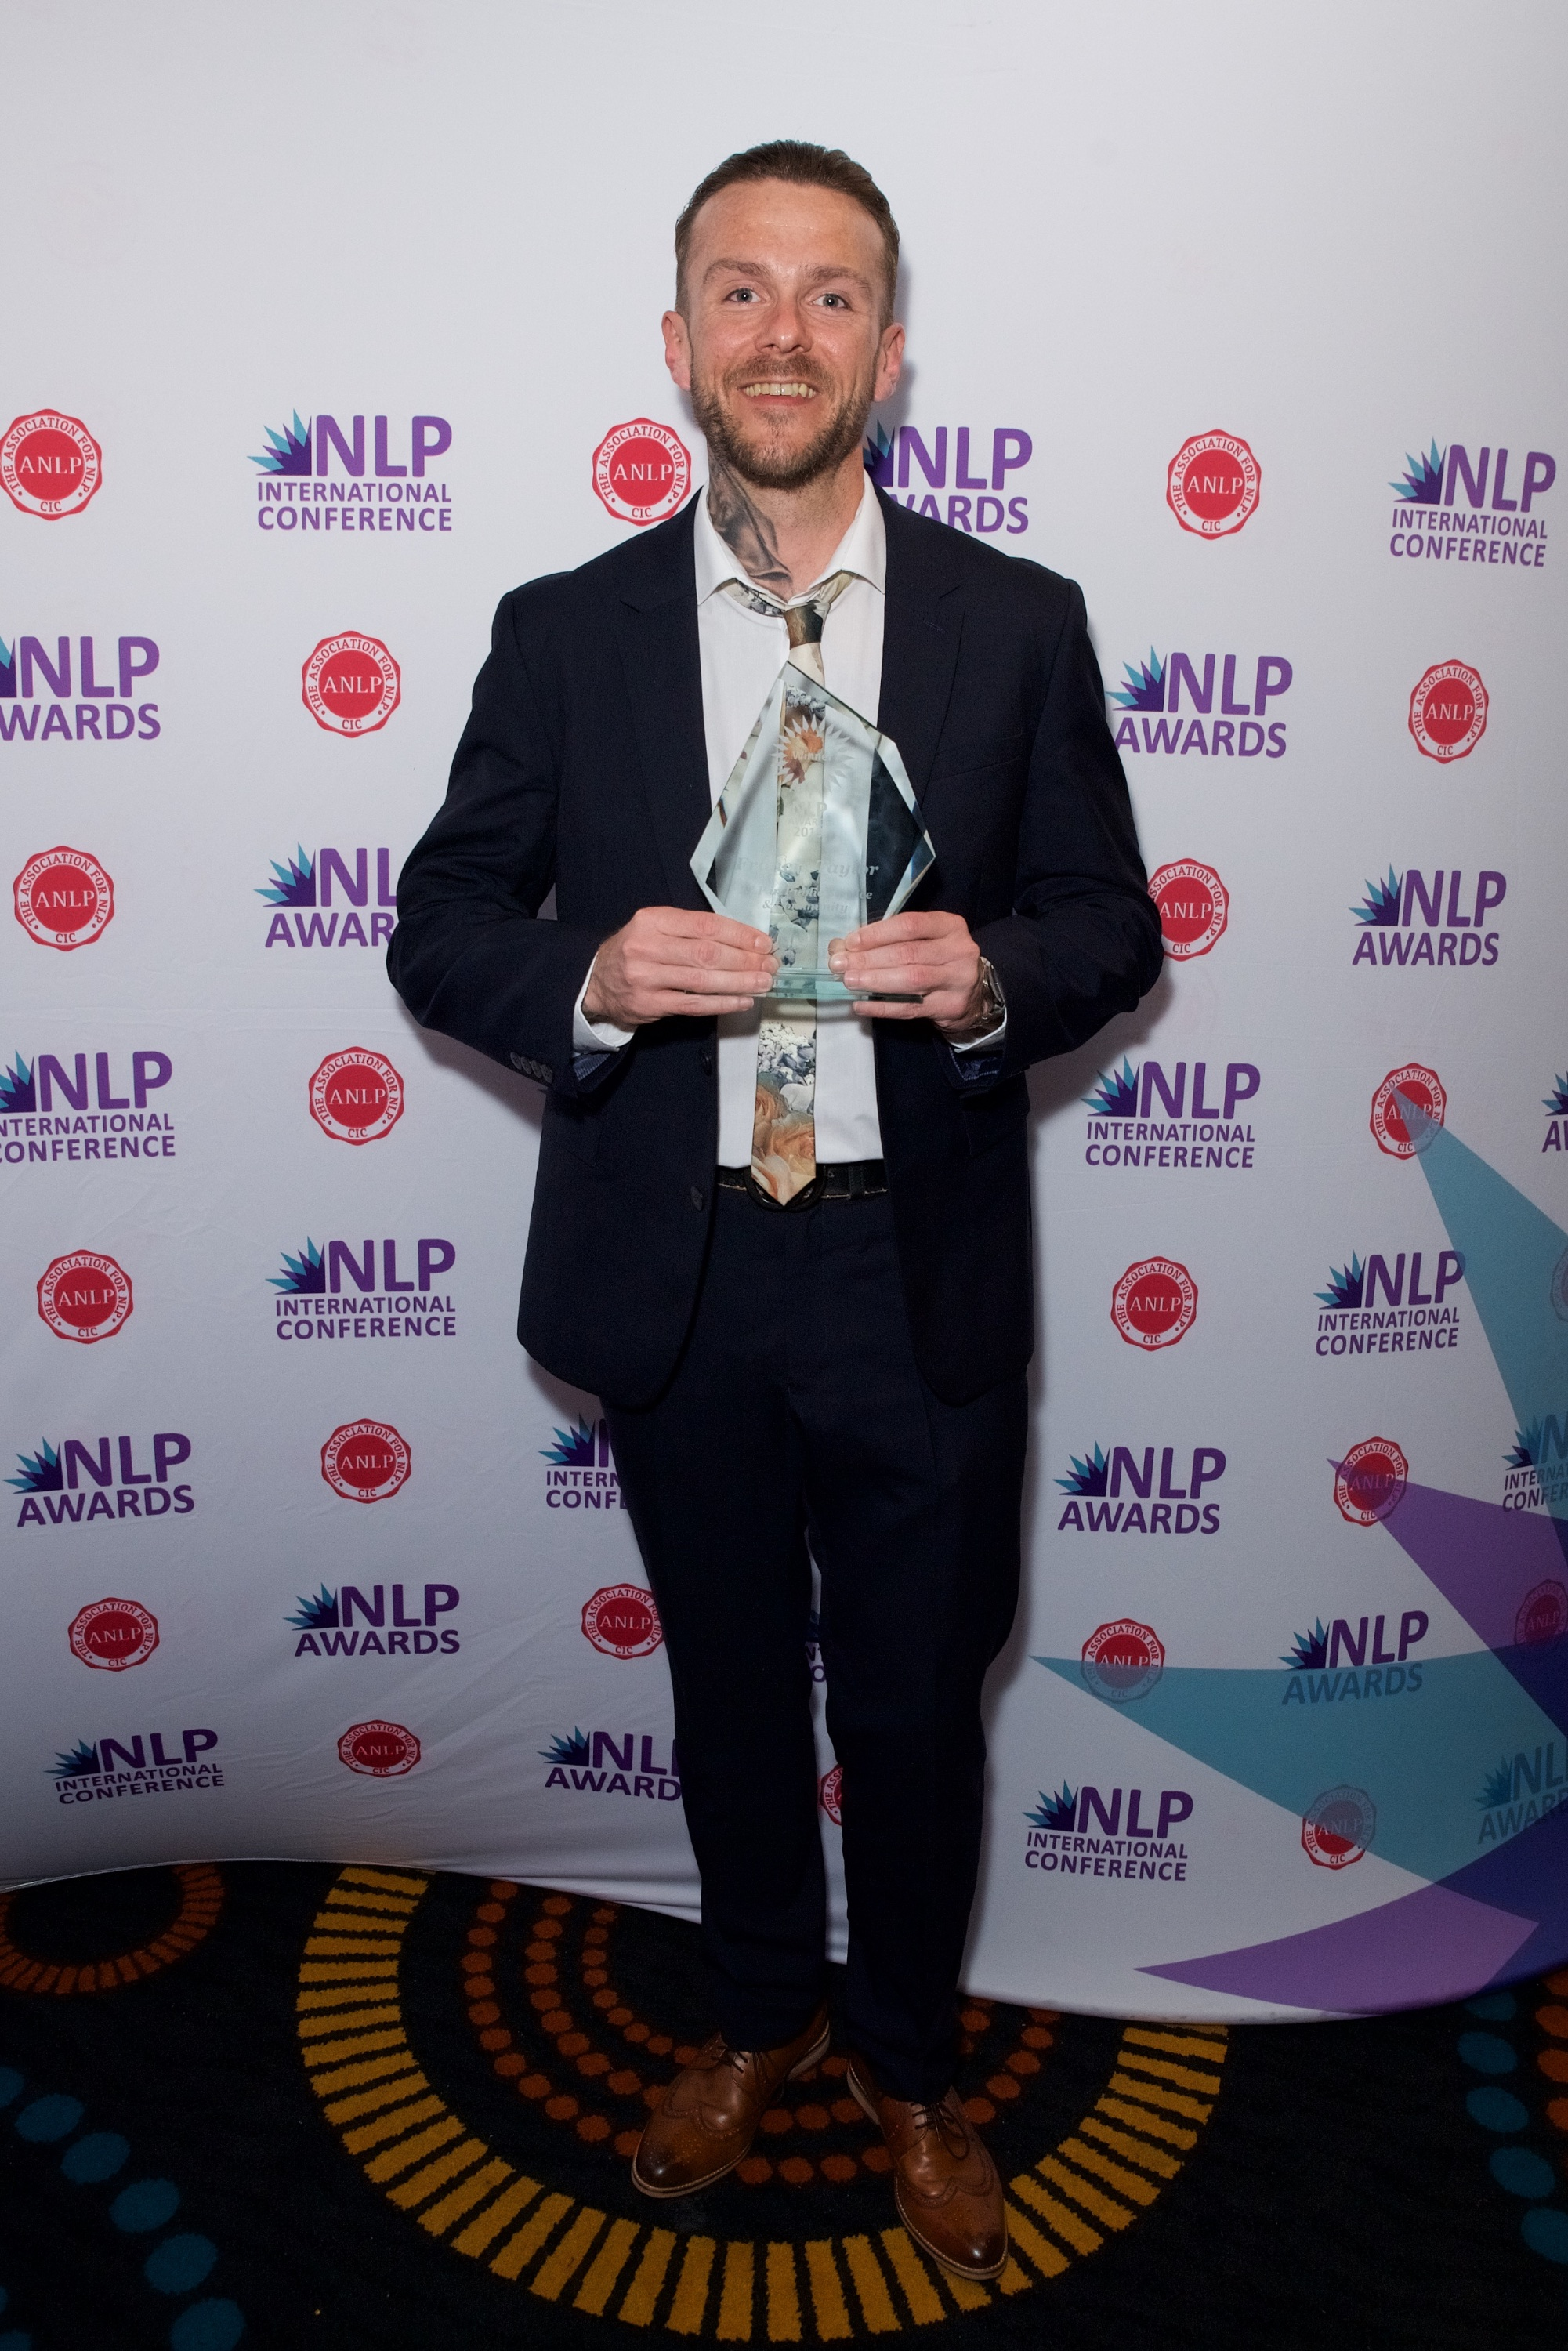 NLP in Community Award Winner 19